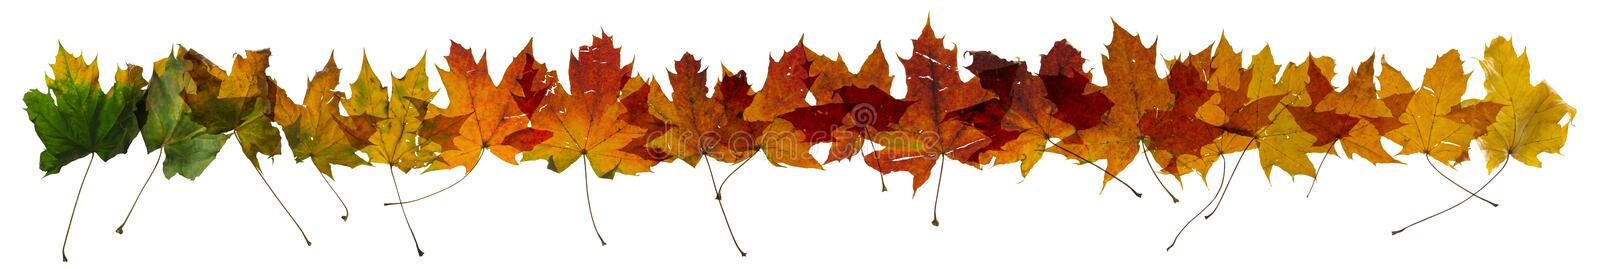 Autumn Maple Leaves Change Row fotografia stock